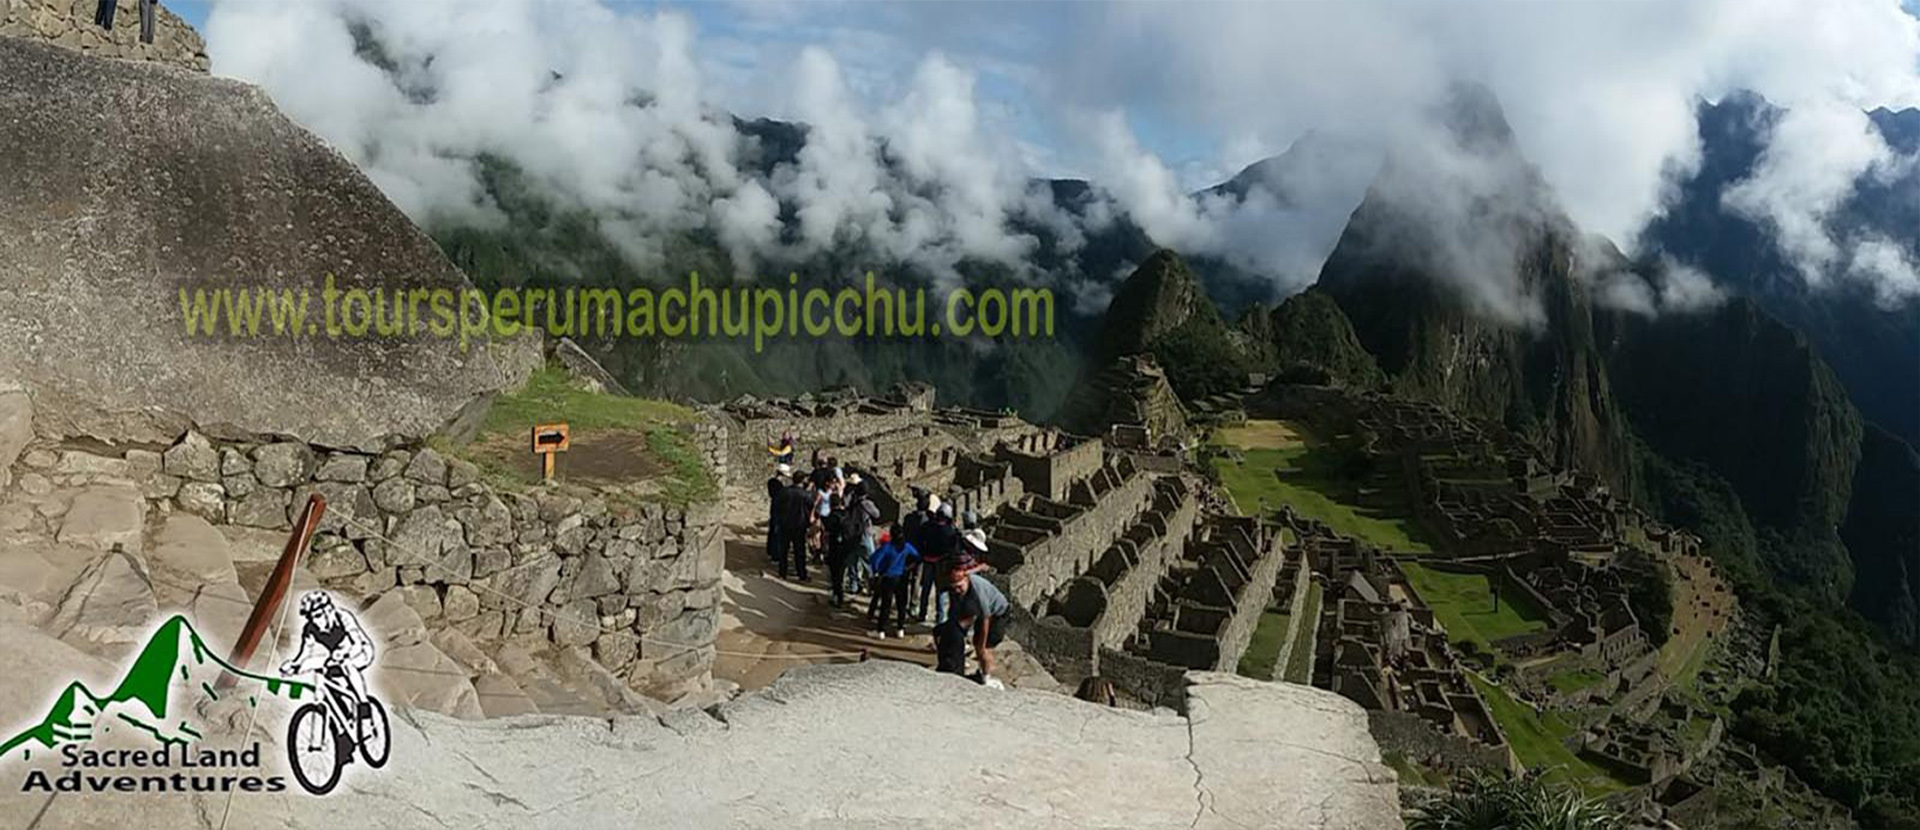 Inka Jungle Trek Tour 4 days and Machupicchu Mountain - Inka Jungle Treks